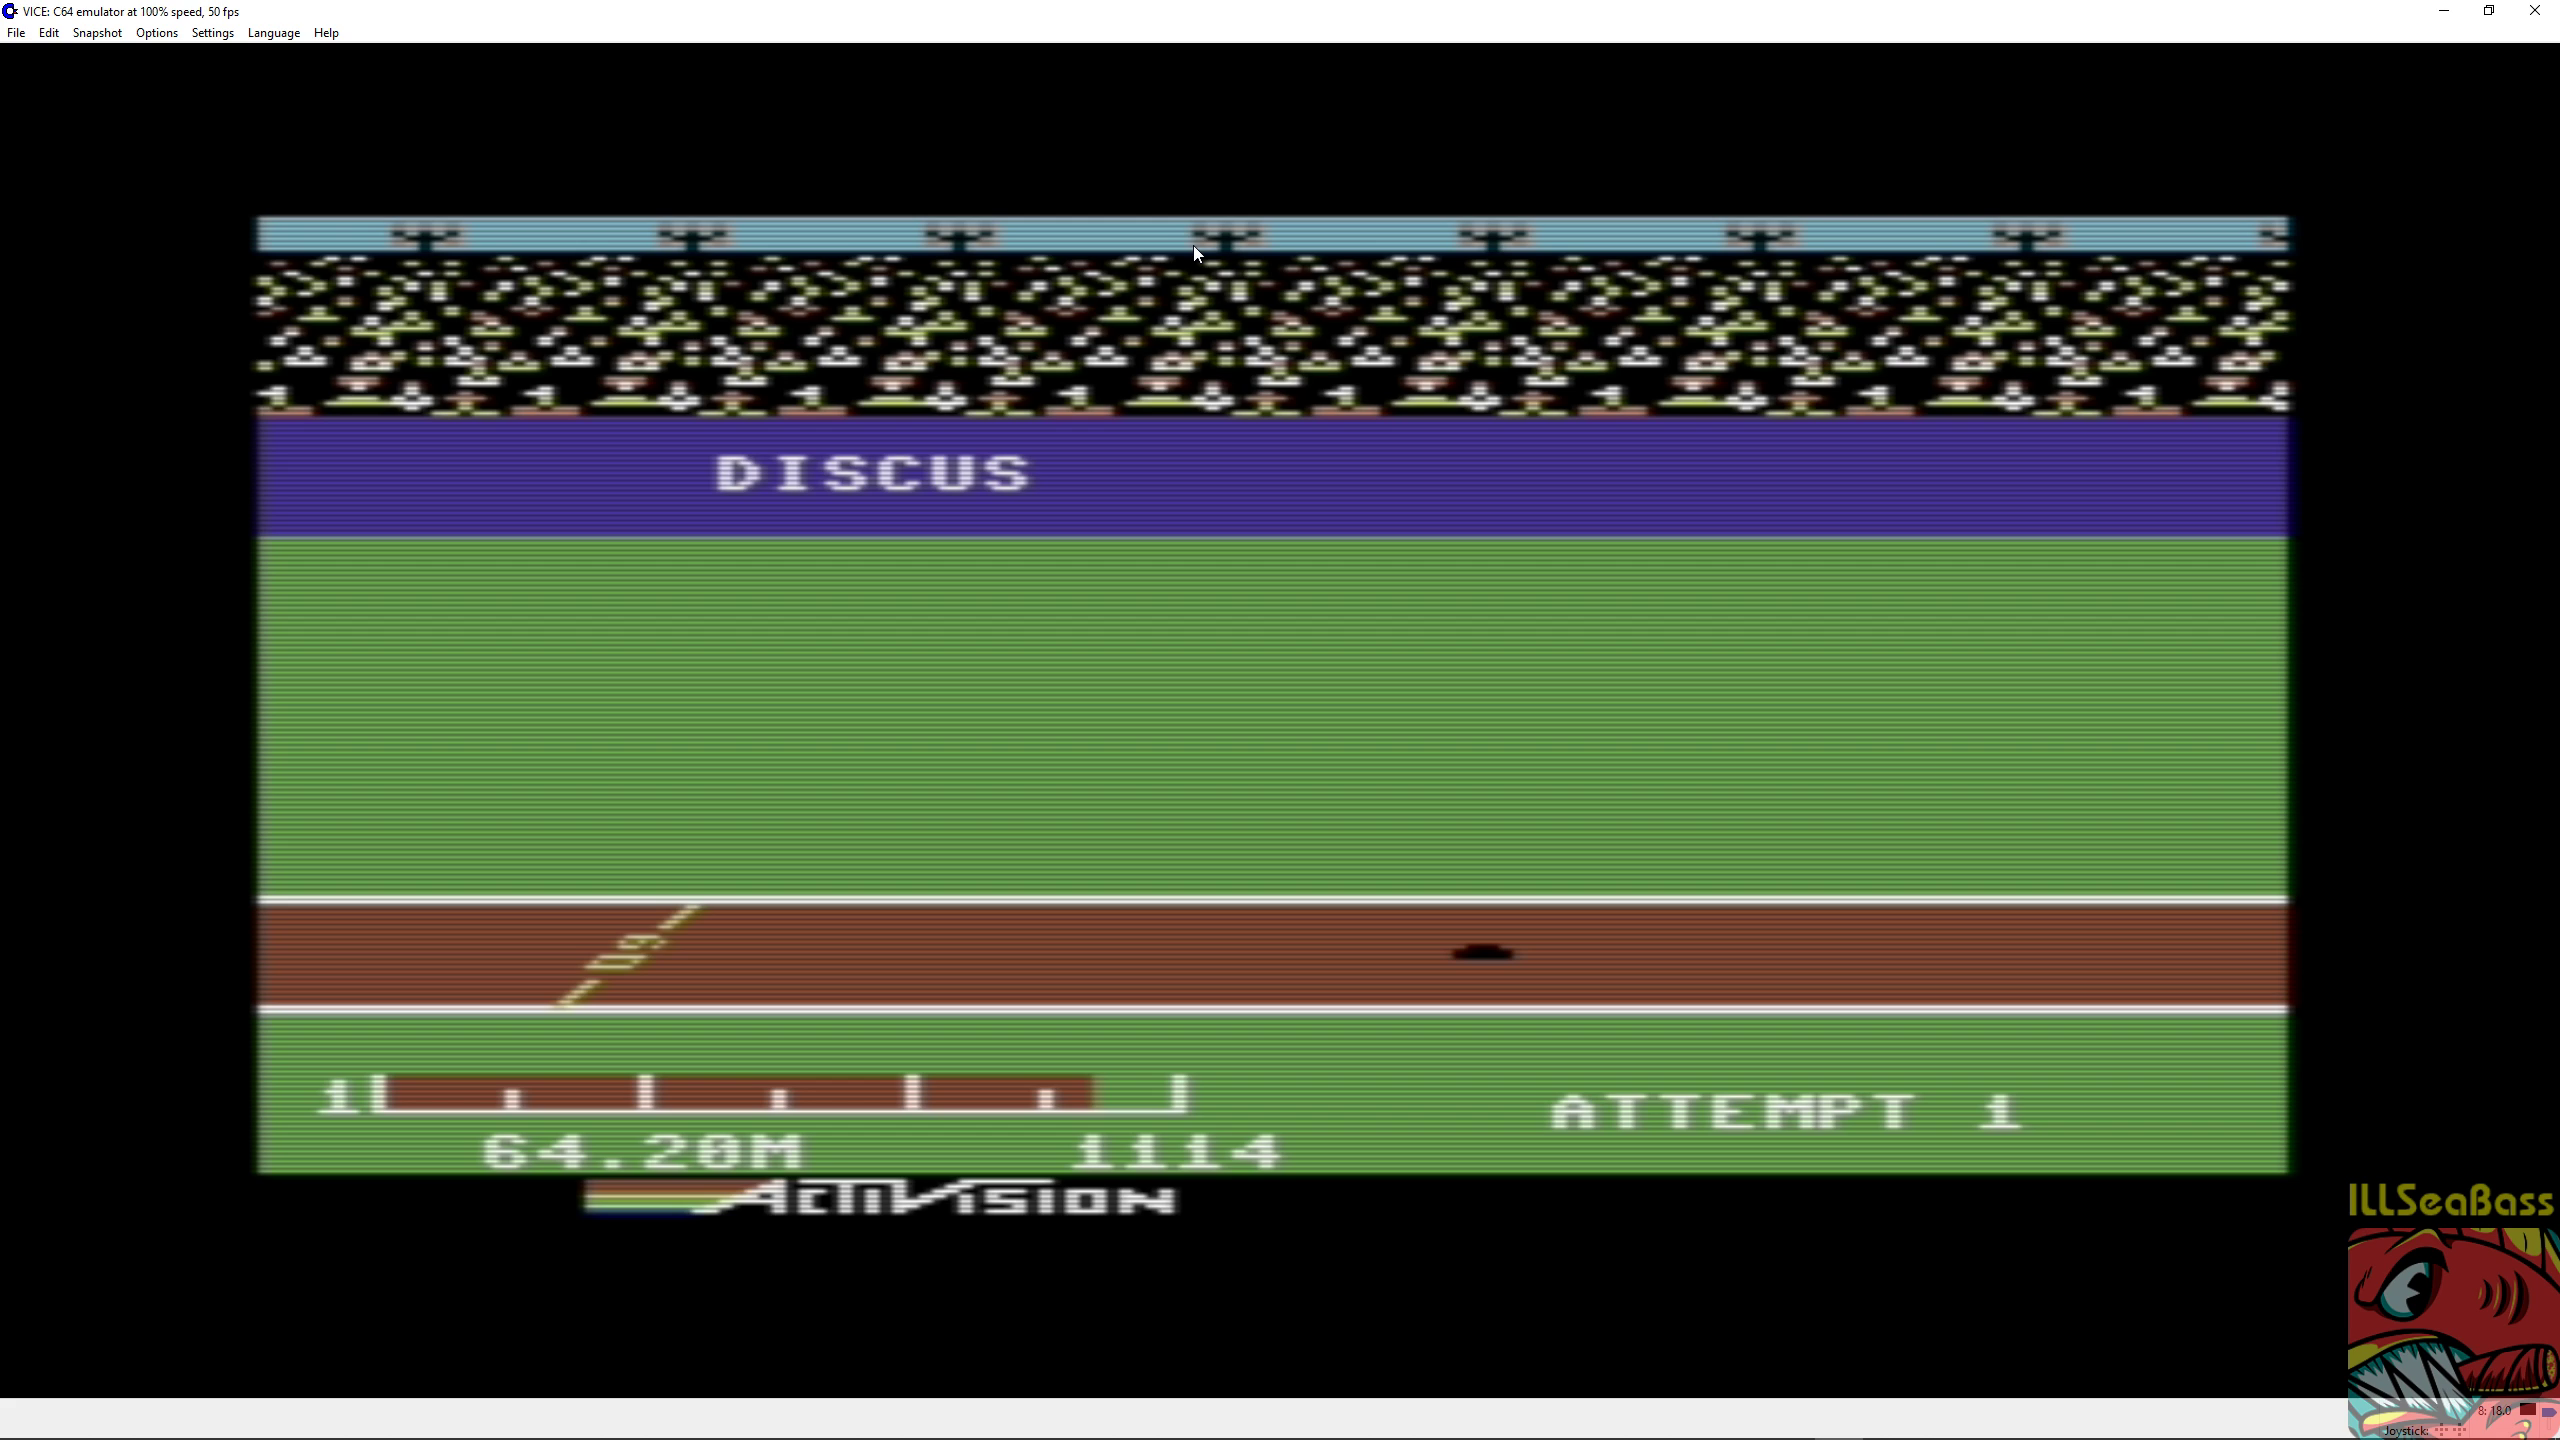 ILLSeaBass: Decathlon: Discus [Meters] (Commodore 64 Emulated) 6,420 points on 2018-06-30 12:17:25